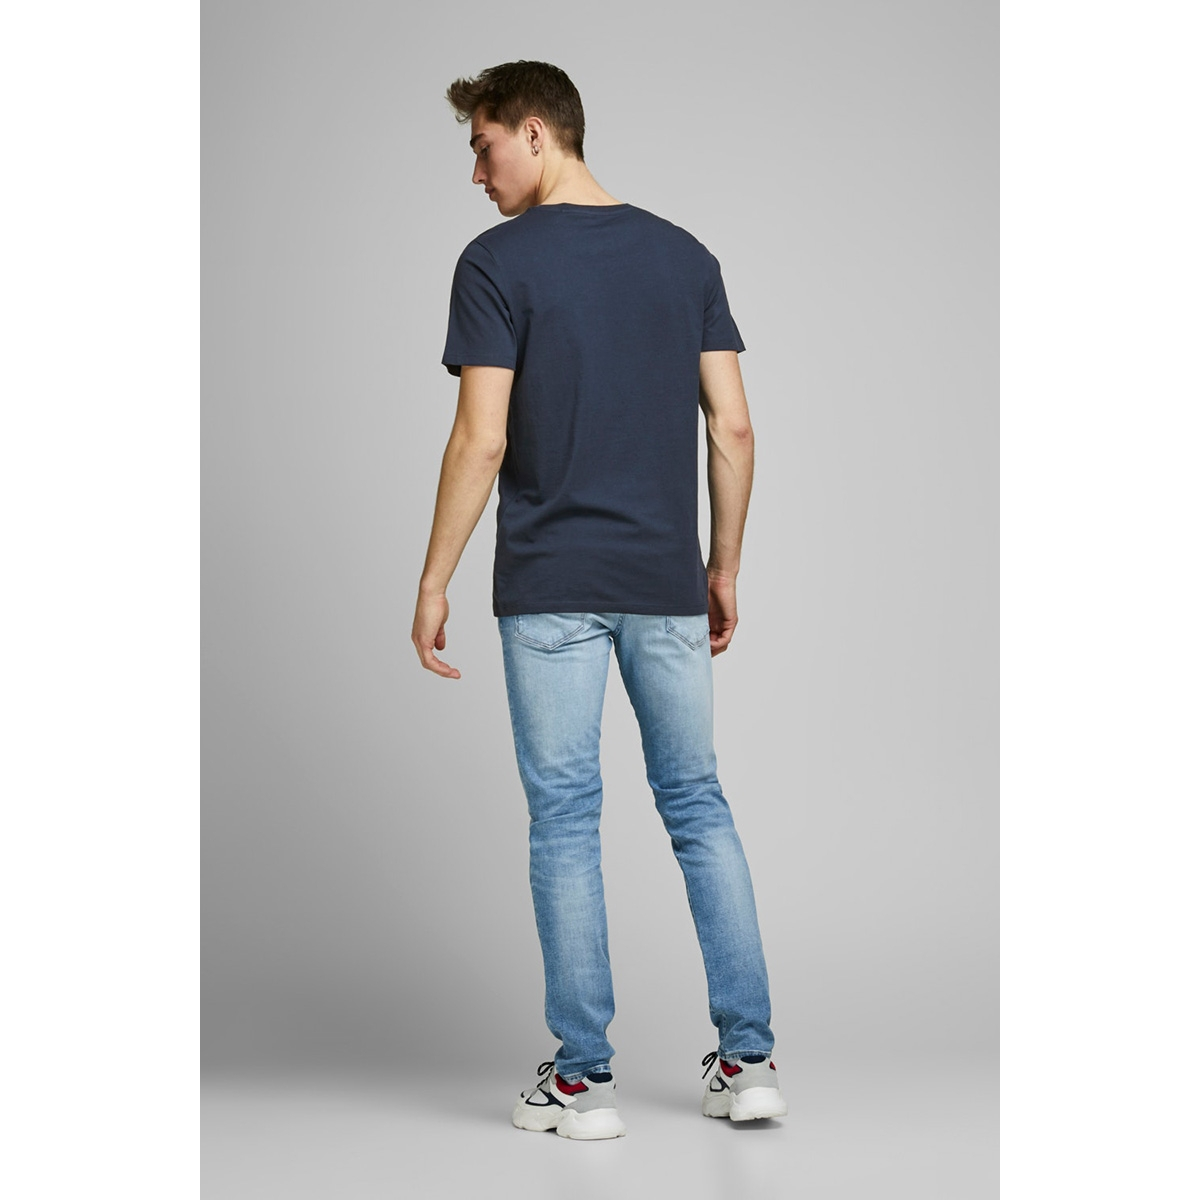 jjelogo tee ss o-neck 2 col ss20 no 12164848 jack & jones t-shirt navy blazer/slim